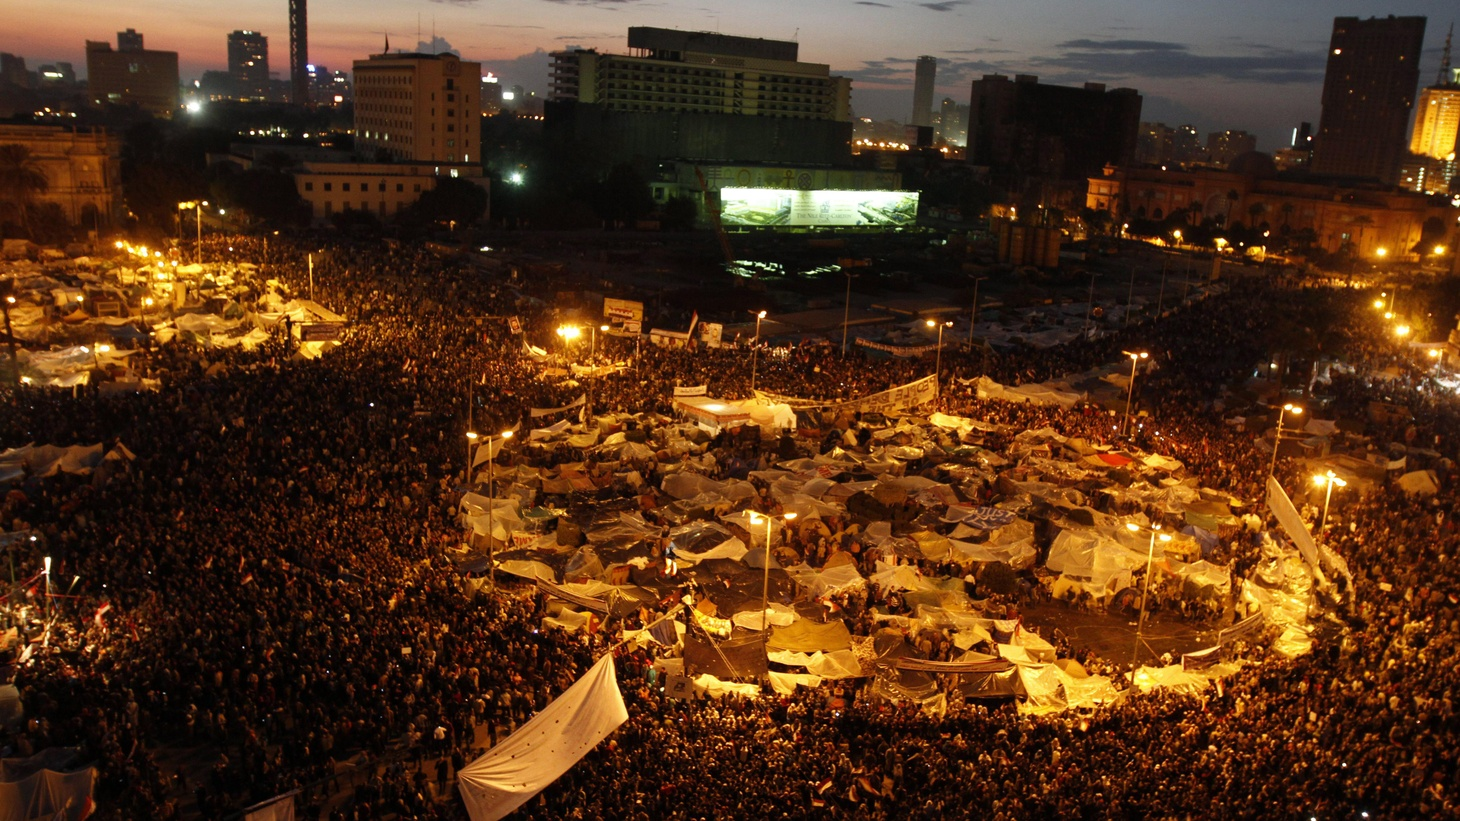 Throughout the evening, Egyptians have been massing in Tahrir Square—anticipating that 30 years of repressive government may be about to come to an end.